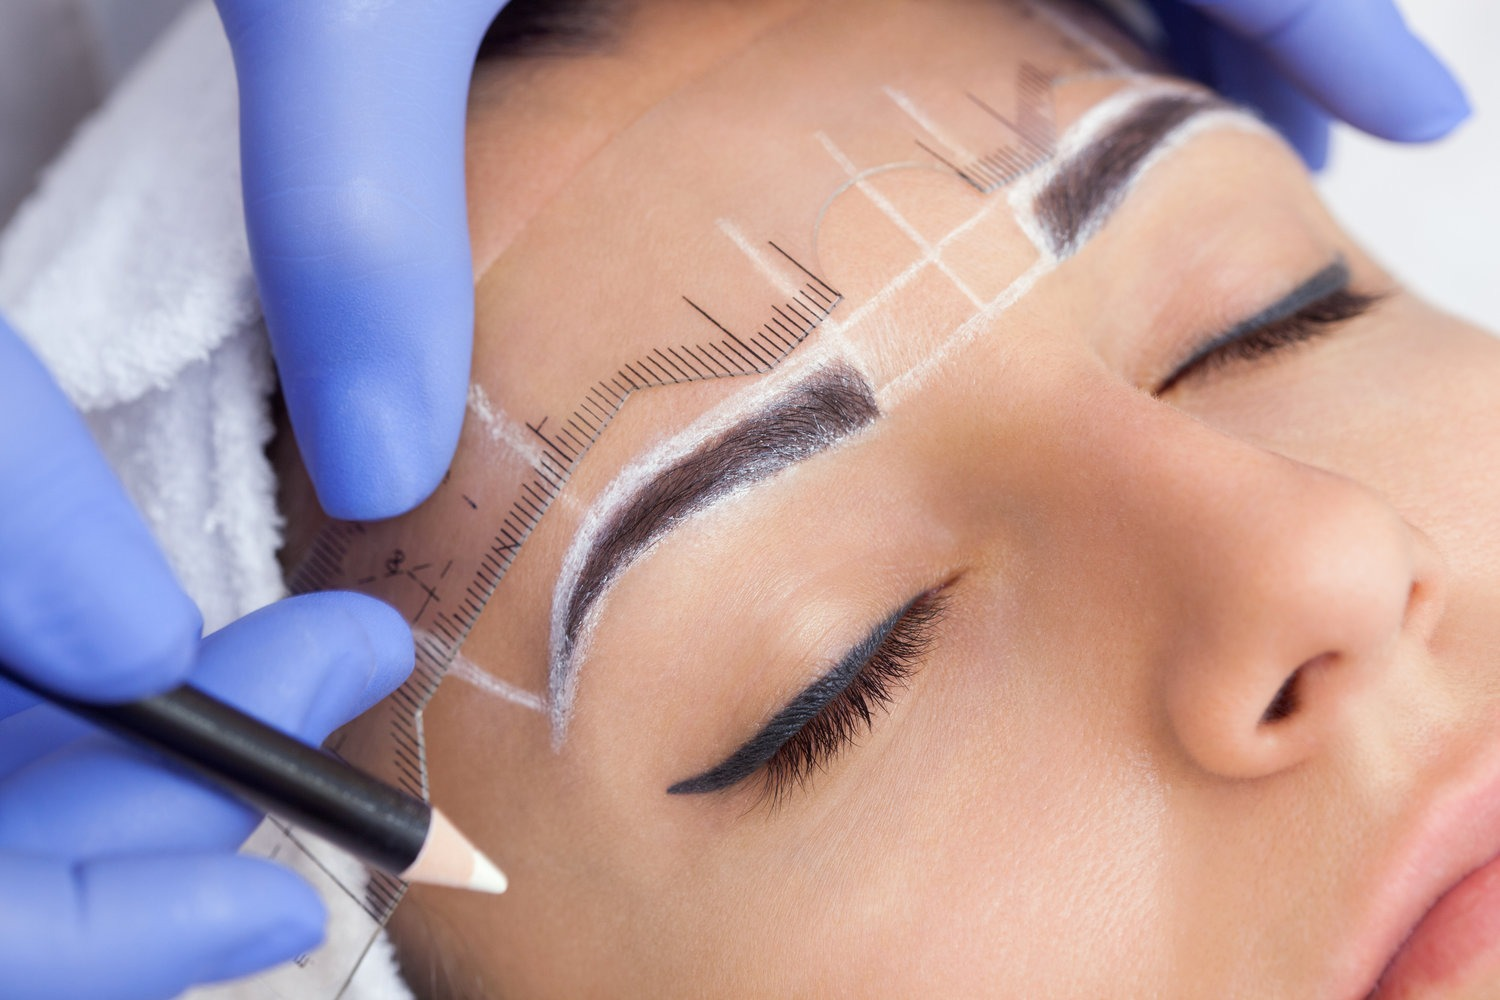 How Should Clients Prepare For A Microblading Appointment? 1